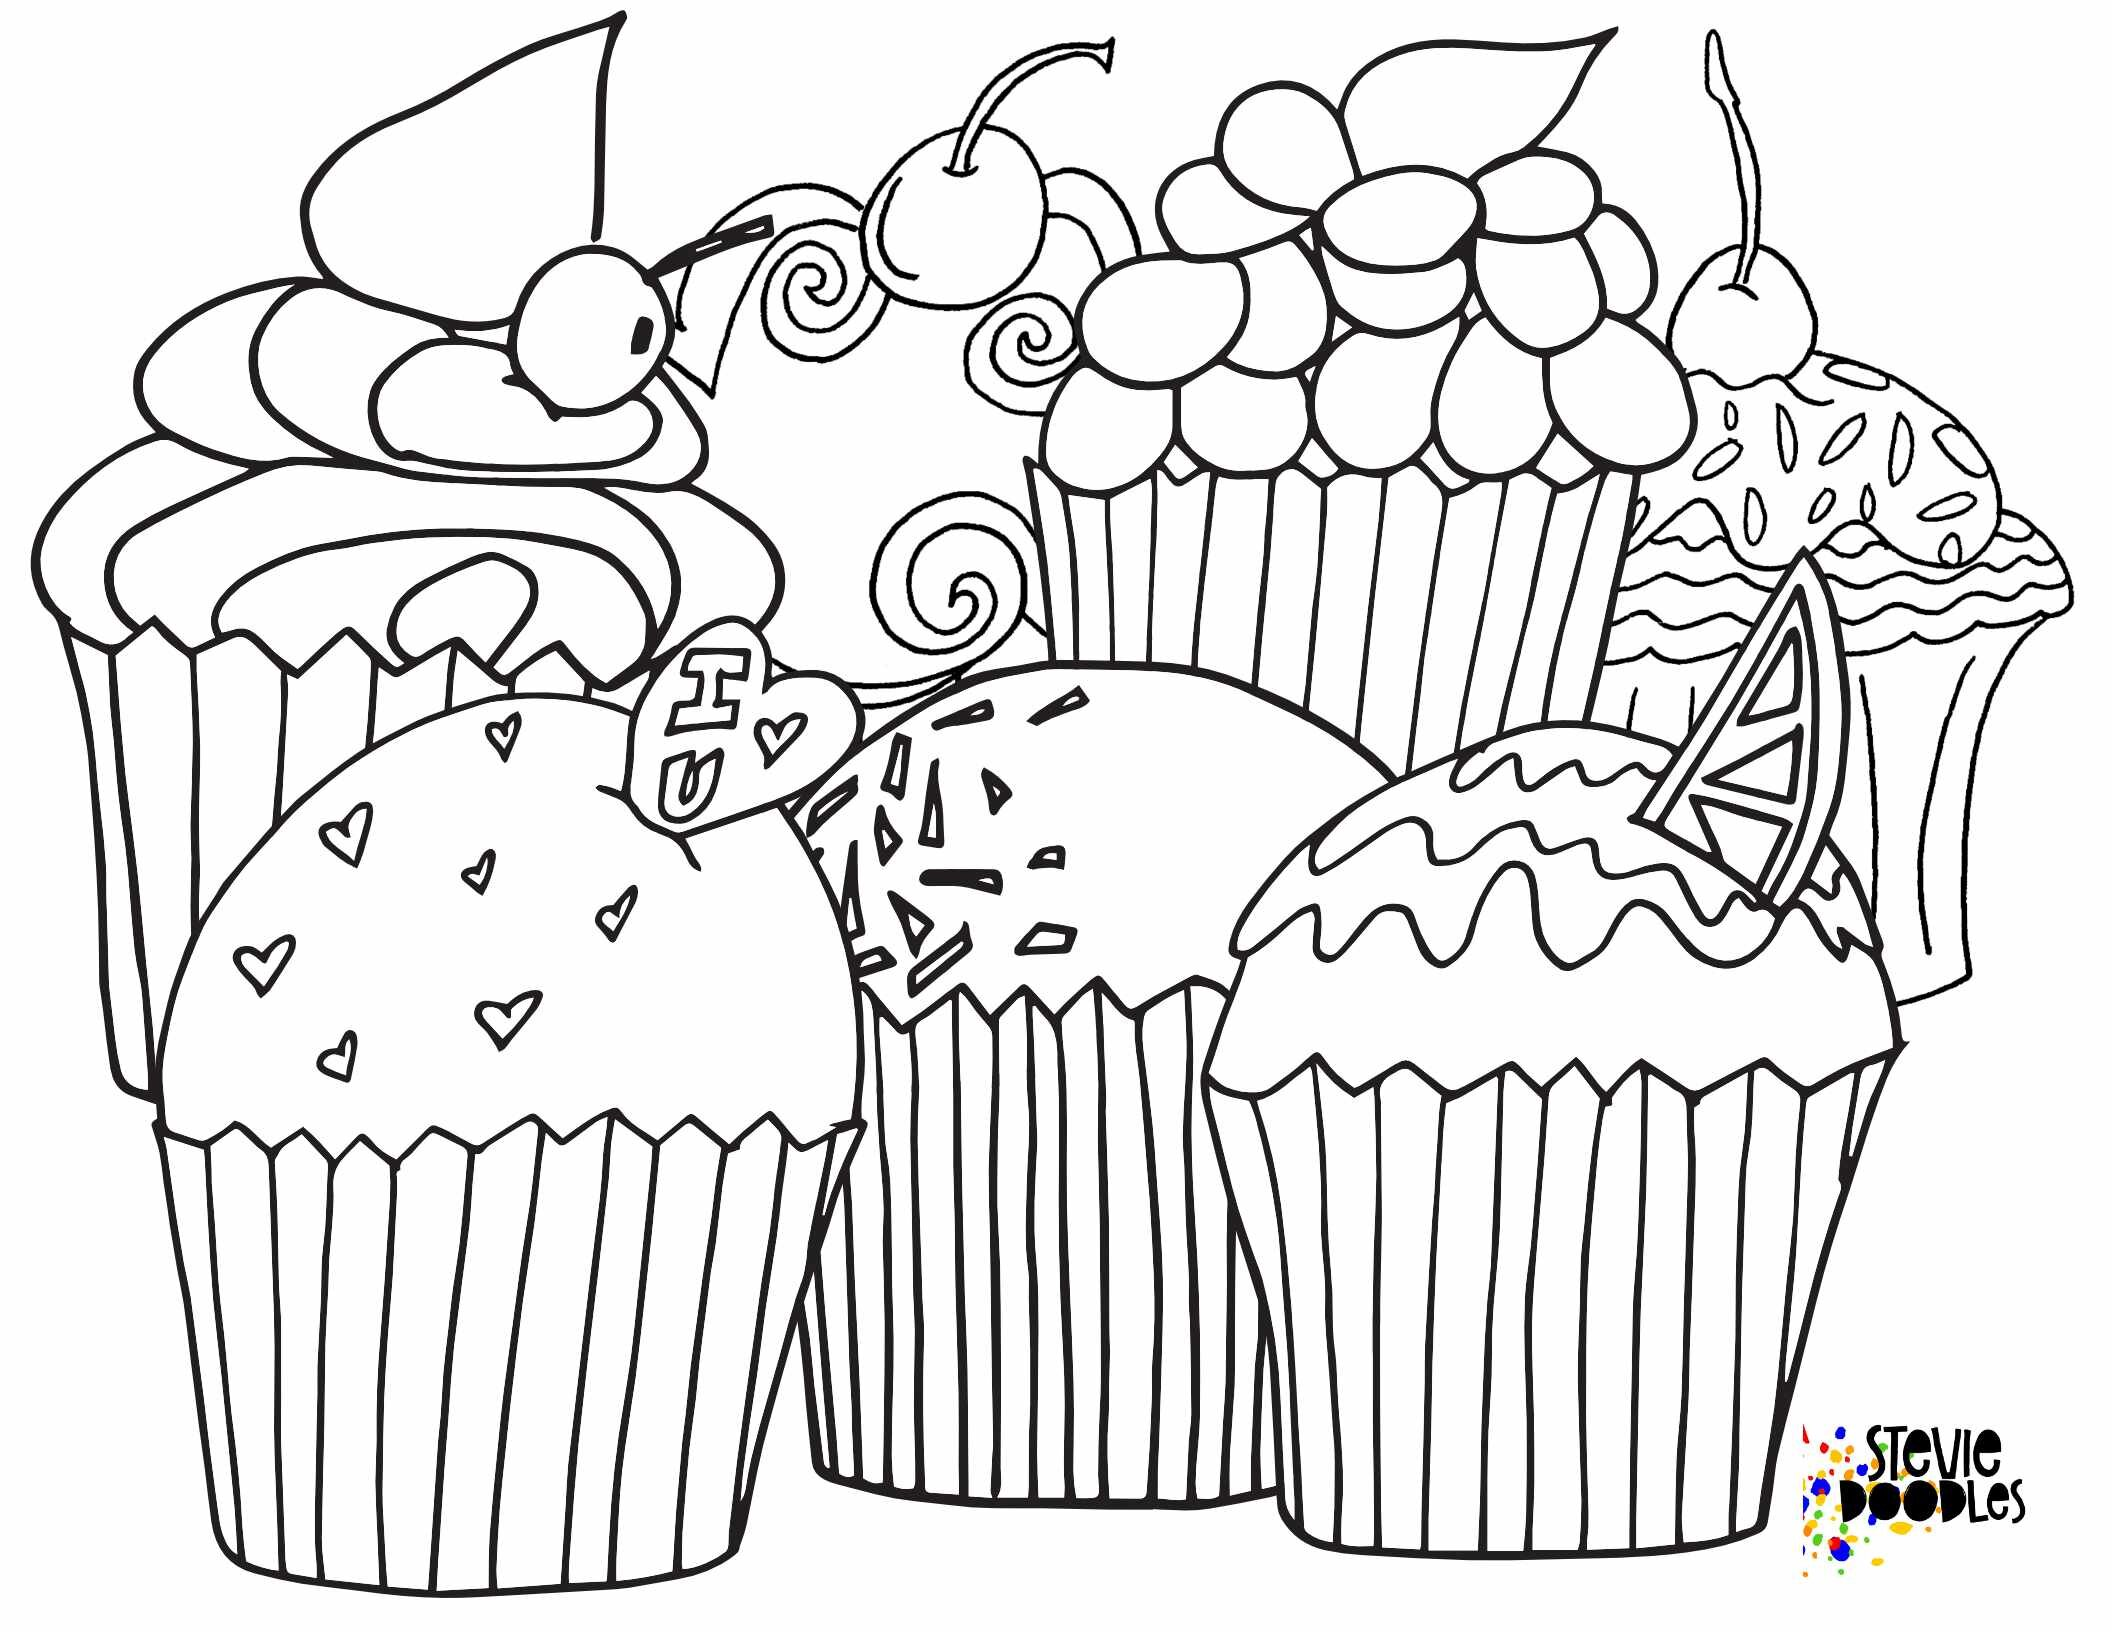 Free Printable Cupcake Coloring Pages — Stevie Doodles Free